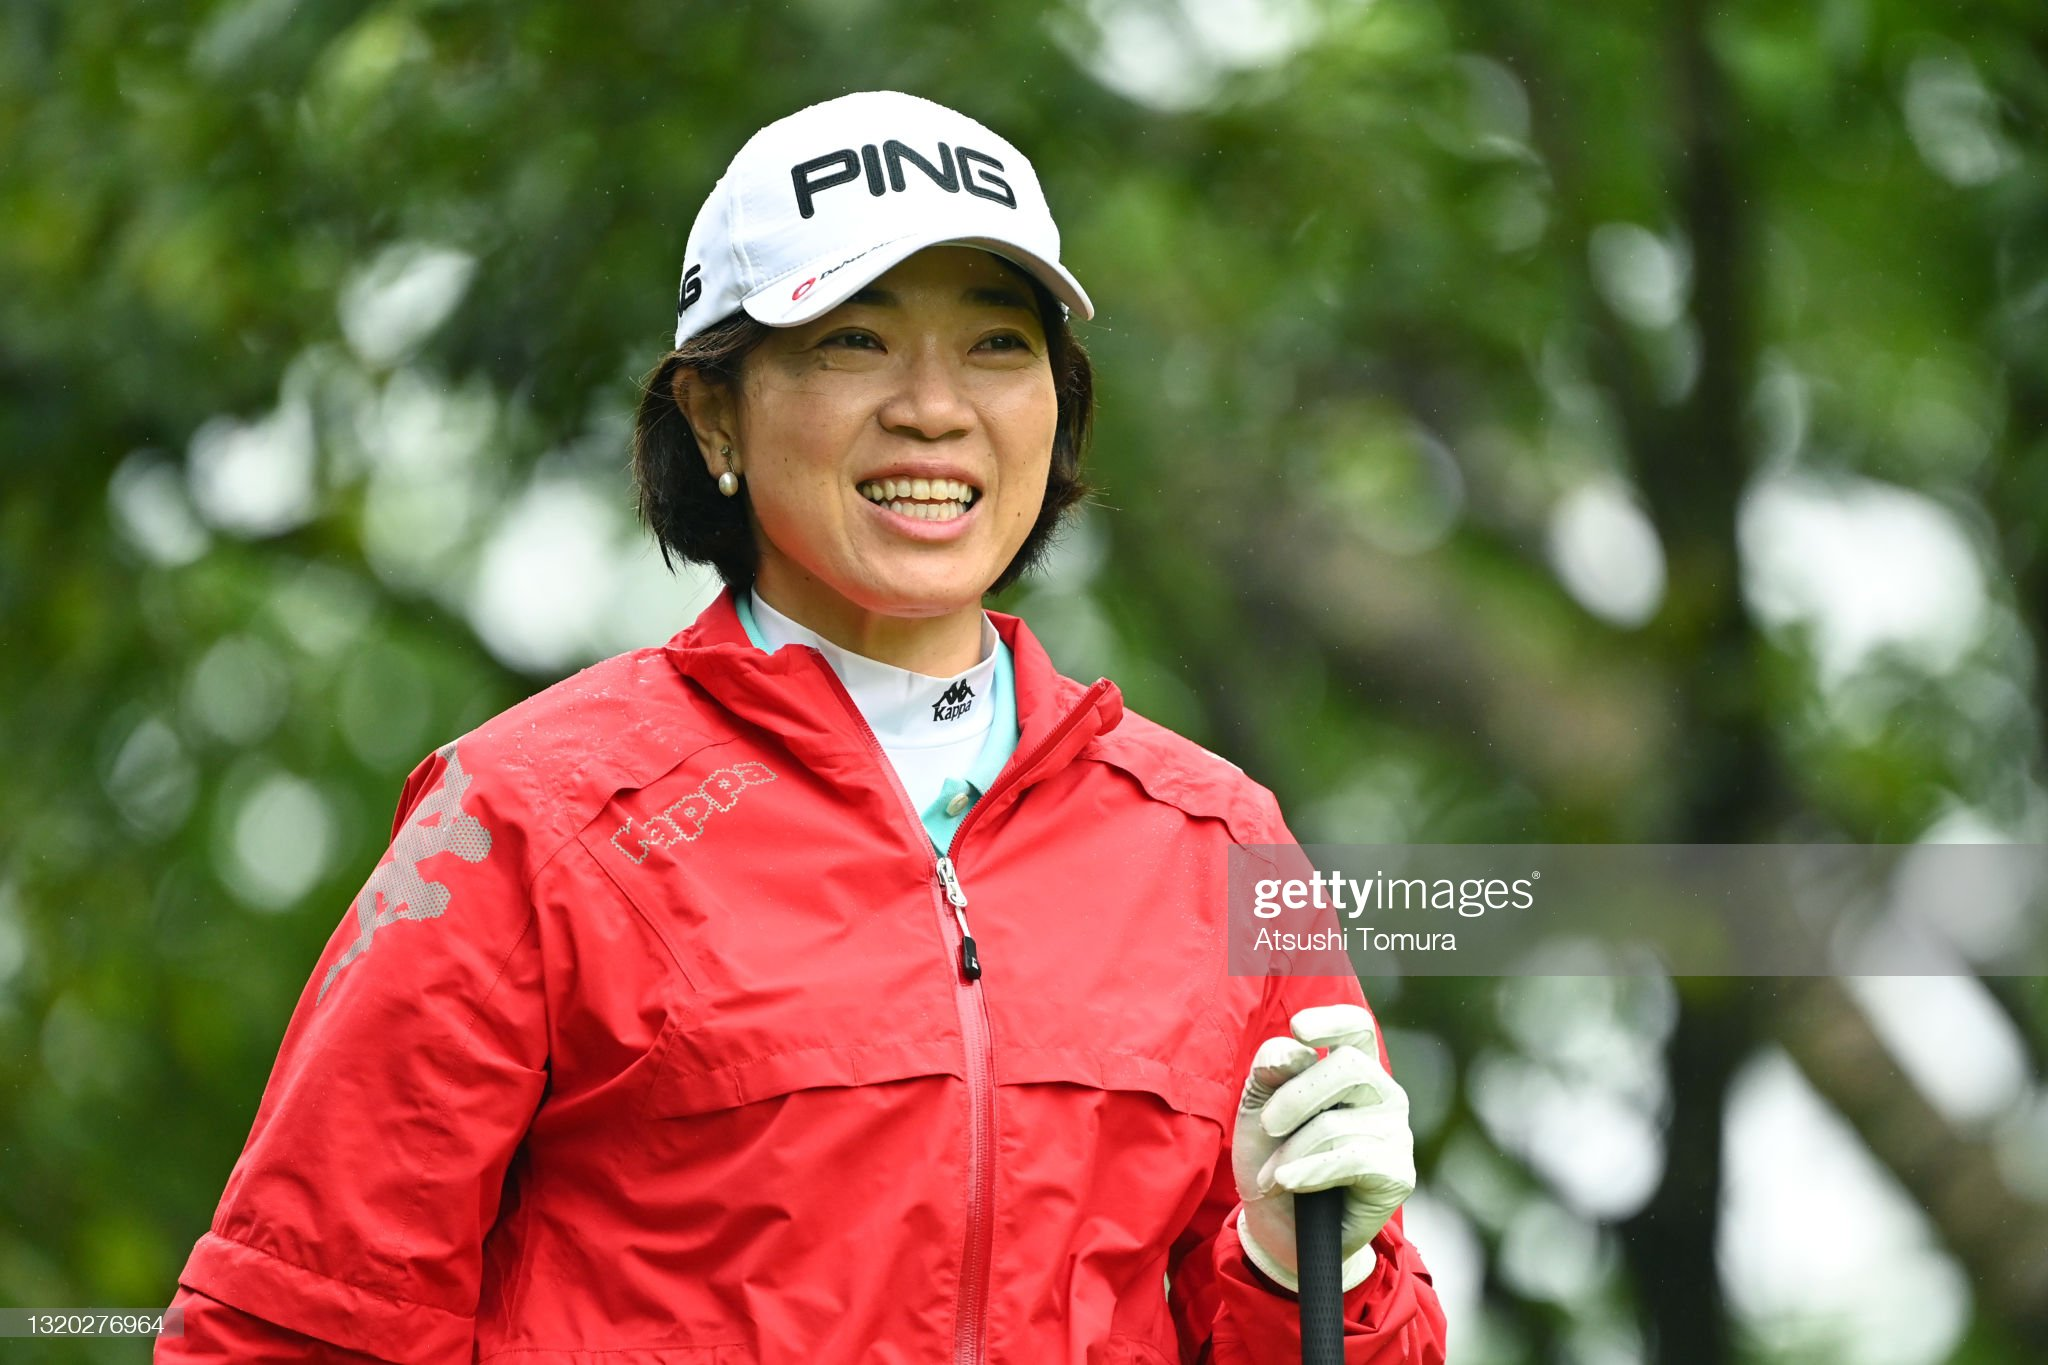 https://media.gettyimages.com/photos/shiho-oyama-of-japan-is-seen-on-the-2nd-tee-during-the-first-round-of-picture-id1320276964?s=2048x2048